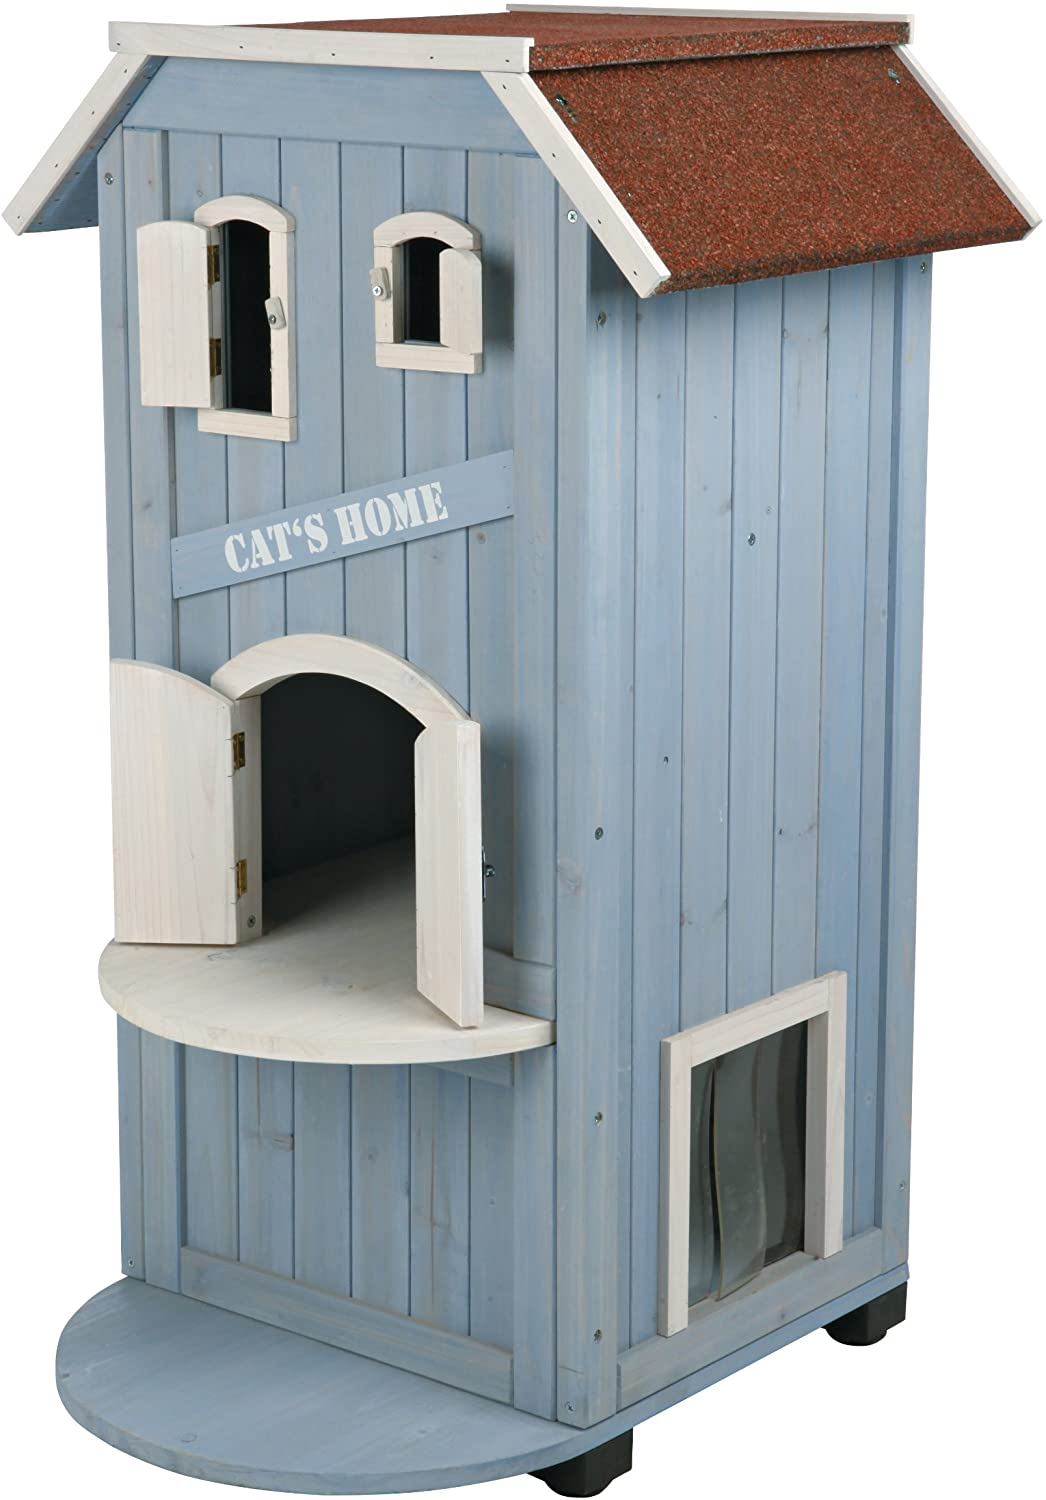 Trixie Pet Products 3 Story Cat S House Cat Houses And Condos Pet Supplies